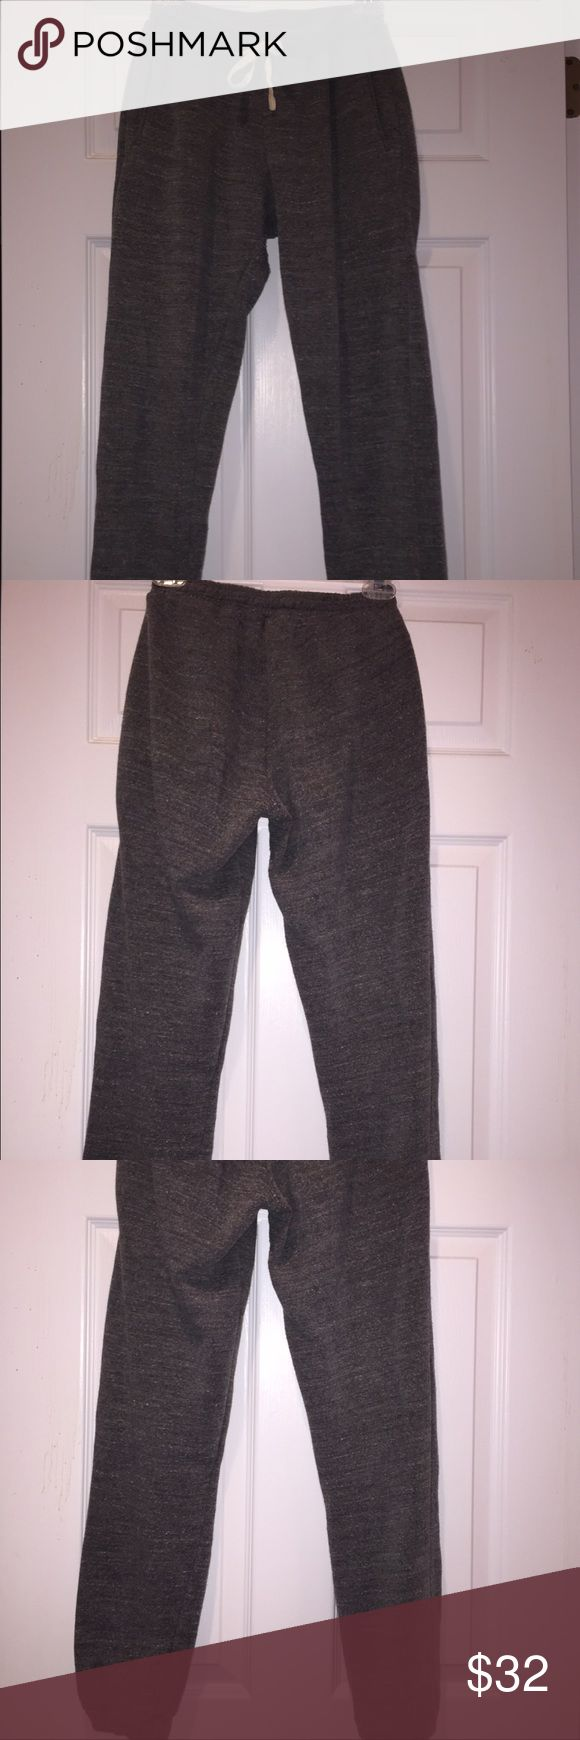 """Nwt Brandy Melville Rosa Sweatpants one size Insanely soft! Women's Brandy Melville rosa sweatpants. Retail price $35. Brand new with price tag, price tag fell off but will be included with the purchase. Heather grey, skinny leg. Drawstring and elastic waist. One size but fits small to medium. 10"""" rise 29"""" inseam 11.5"""" waist. Thanks for looking! Brandy Melville Pants Track Pants & Joggers"""